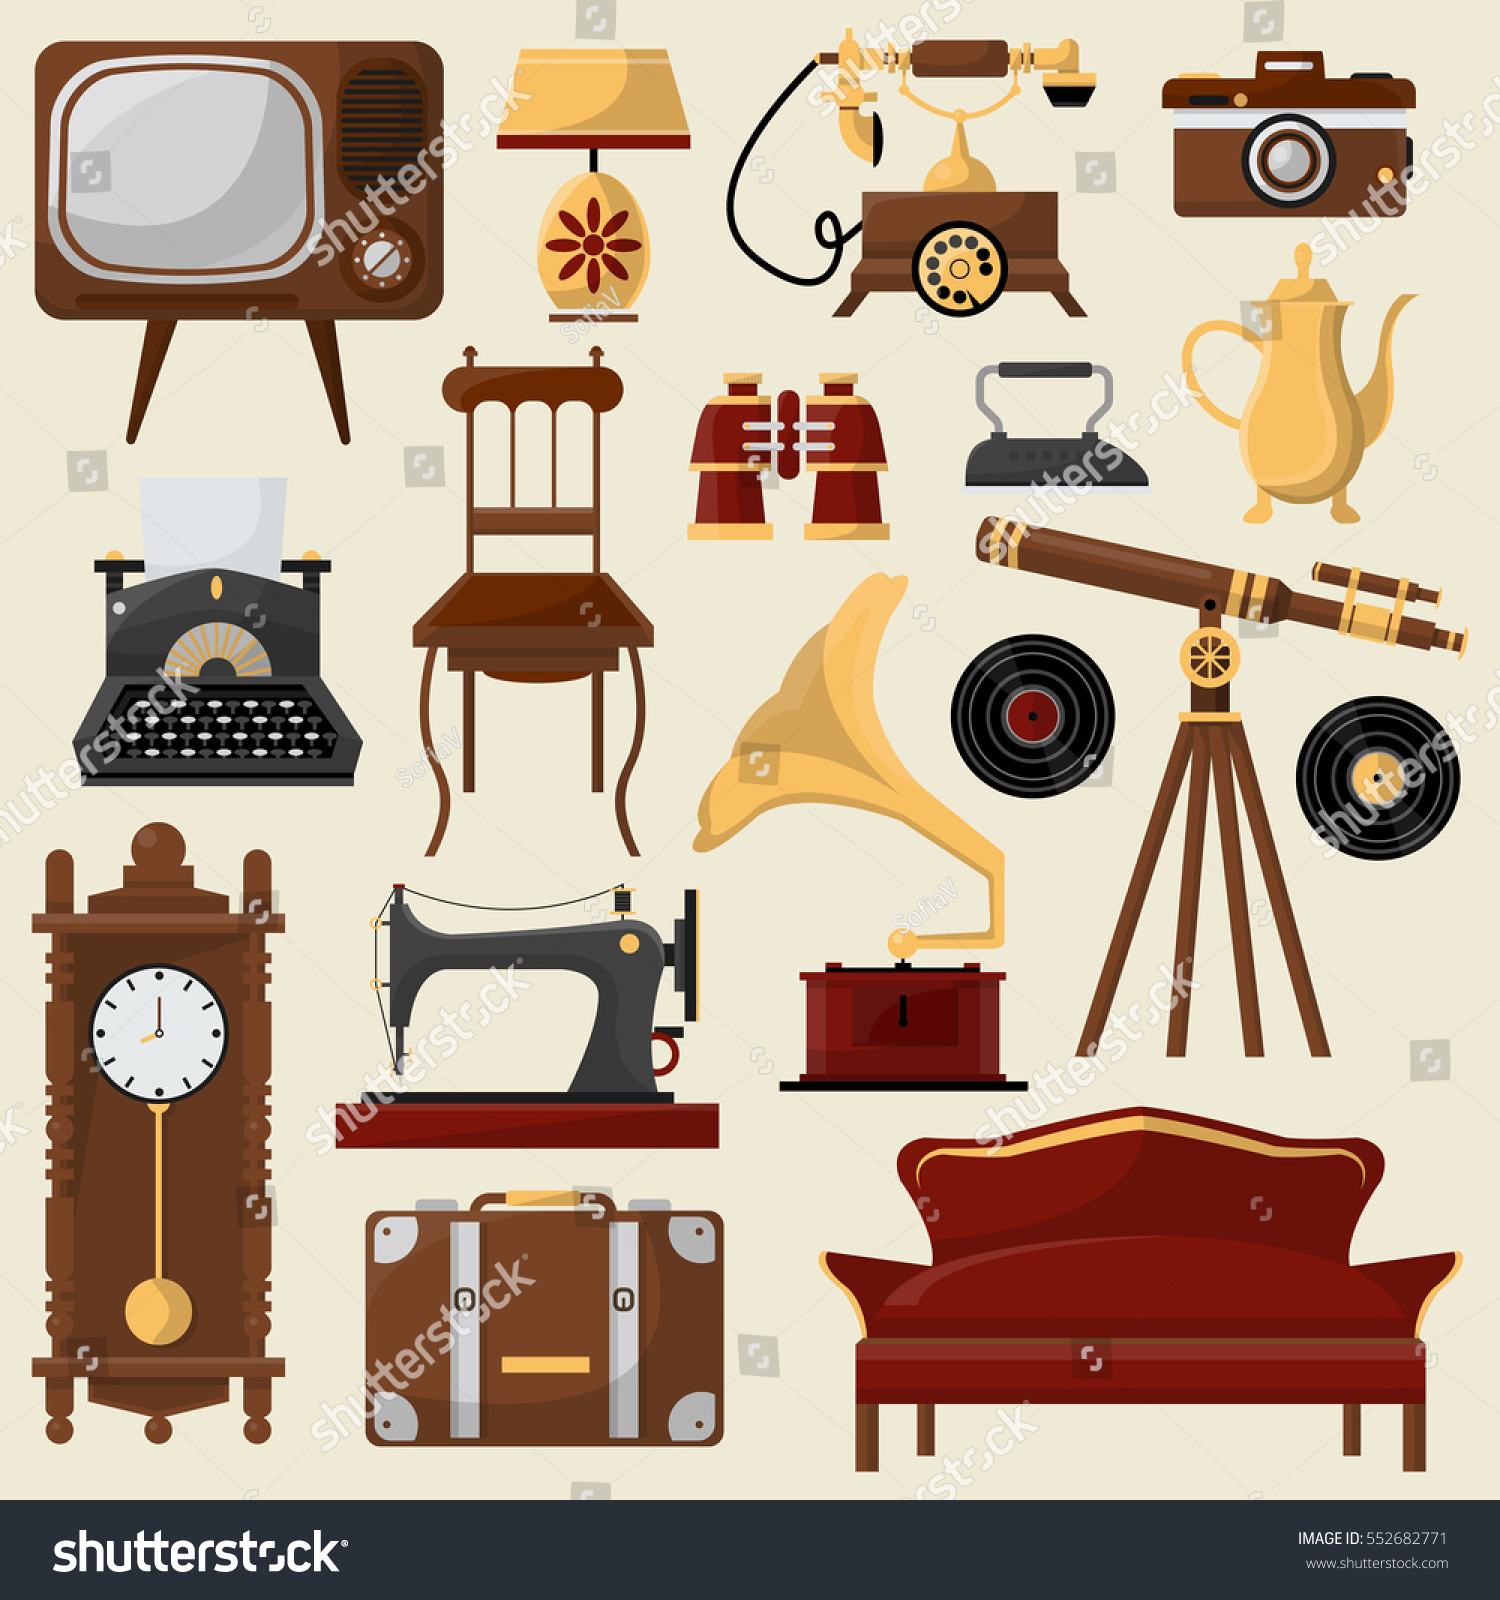 Set of vintage home furniture and accessories  Retro interior  chair  sofa   lamp. Set Vintage Home Furniture Accessories Retro Stock Vector